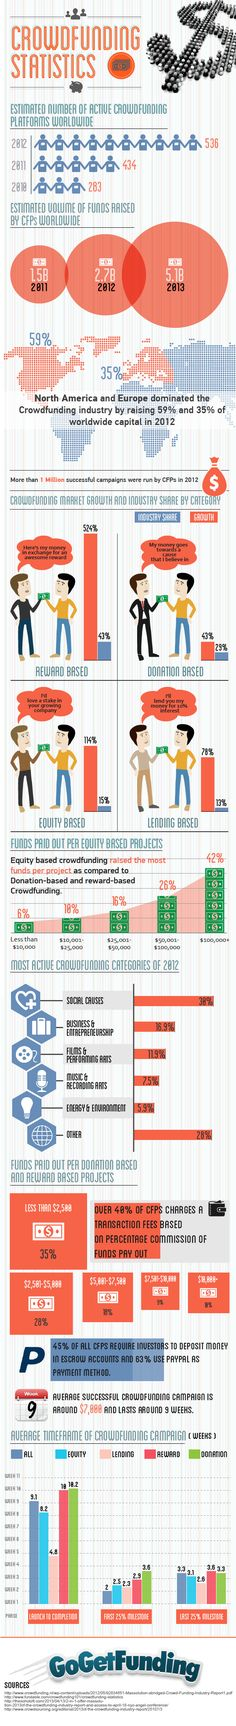 Crowdfunding Industry Trends and Statistics [Infographic]